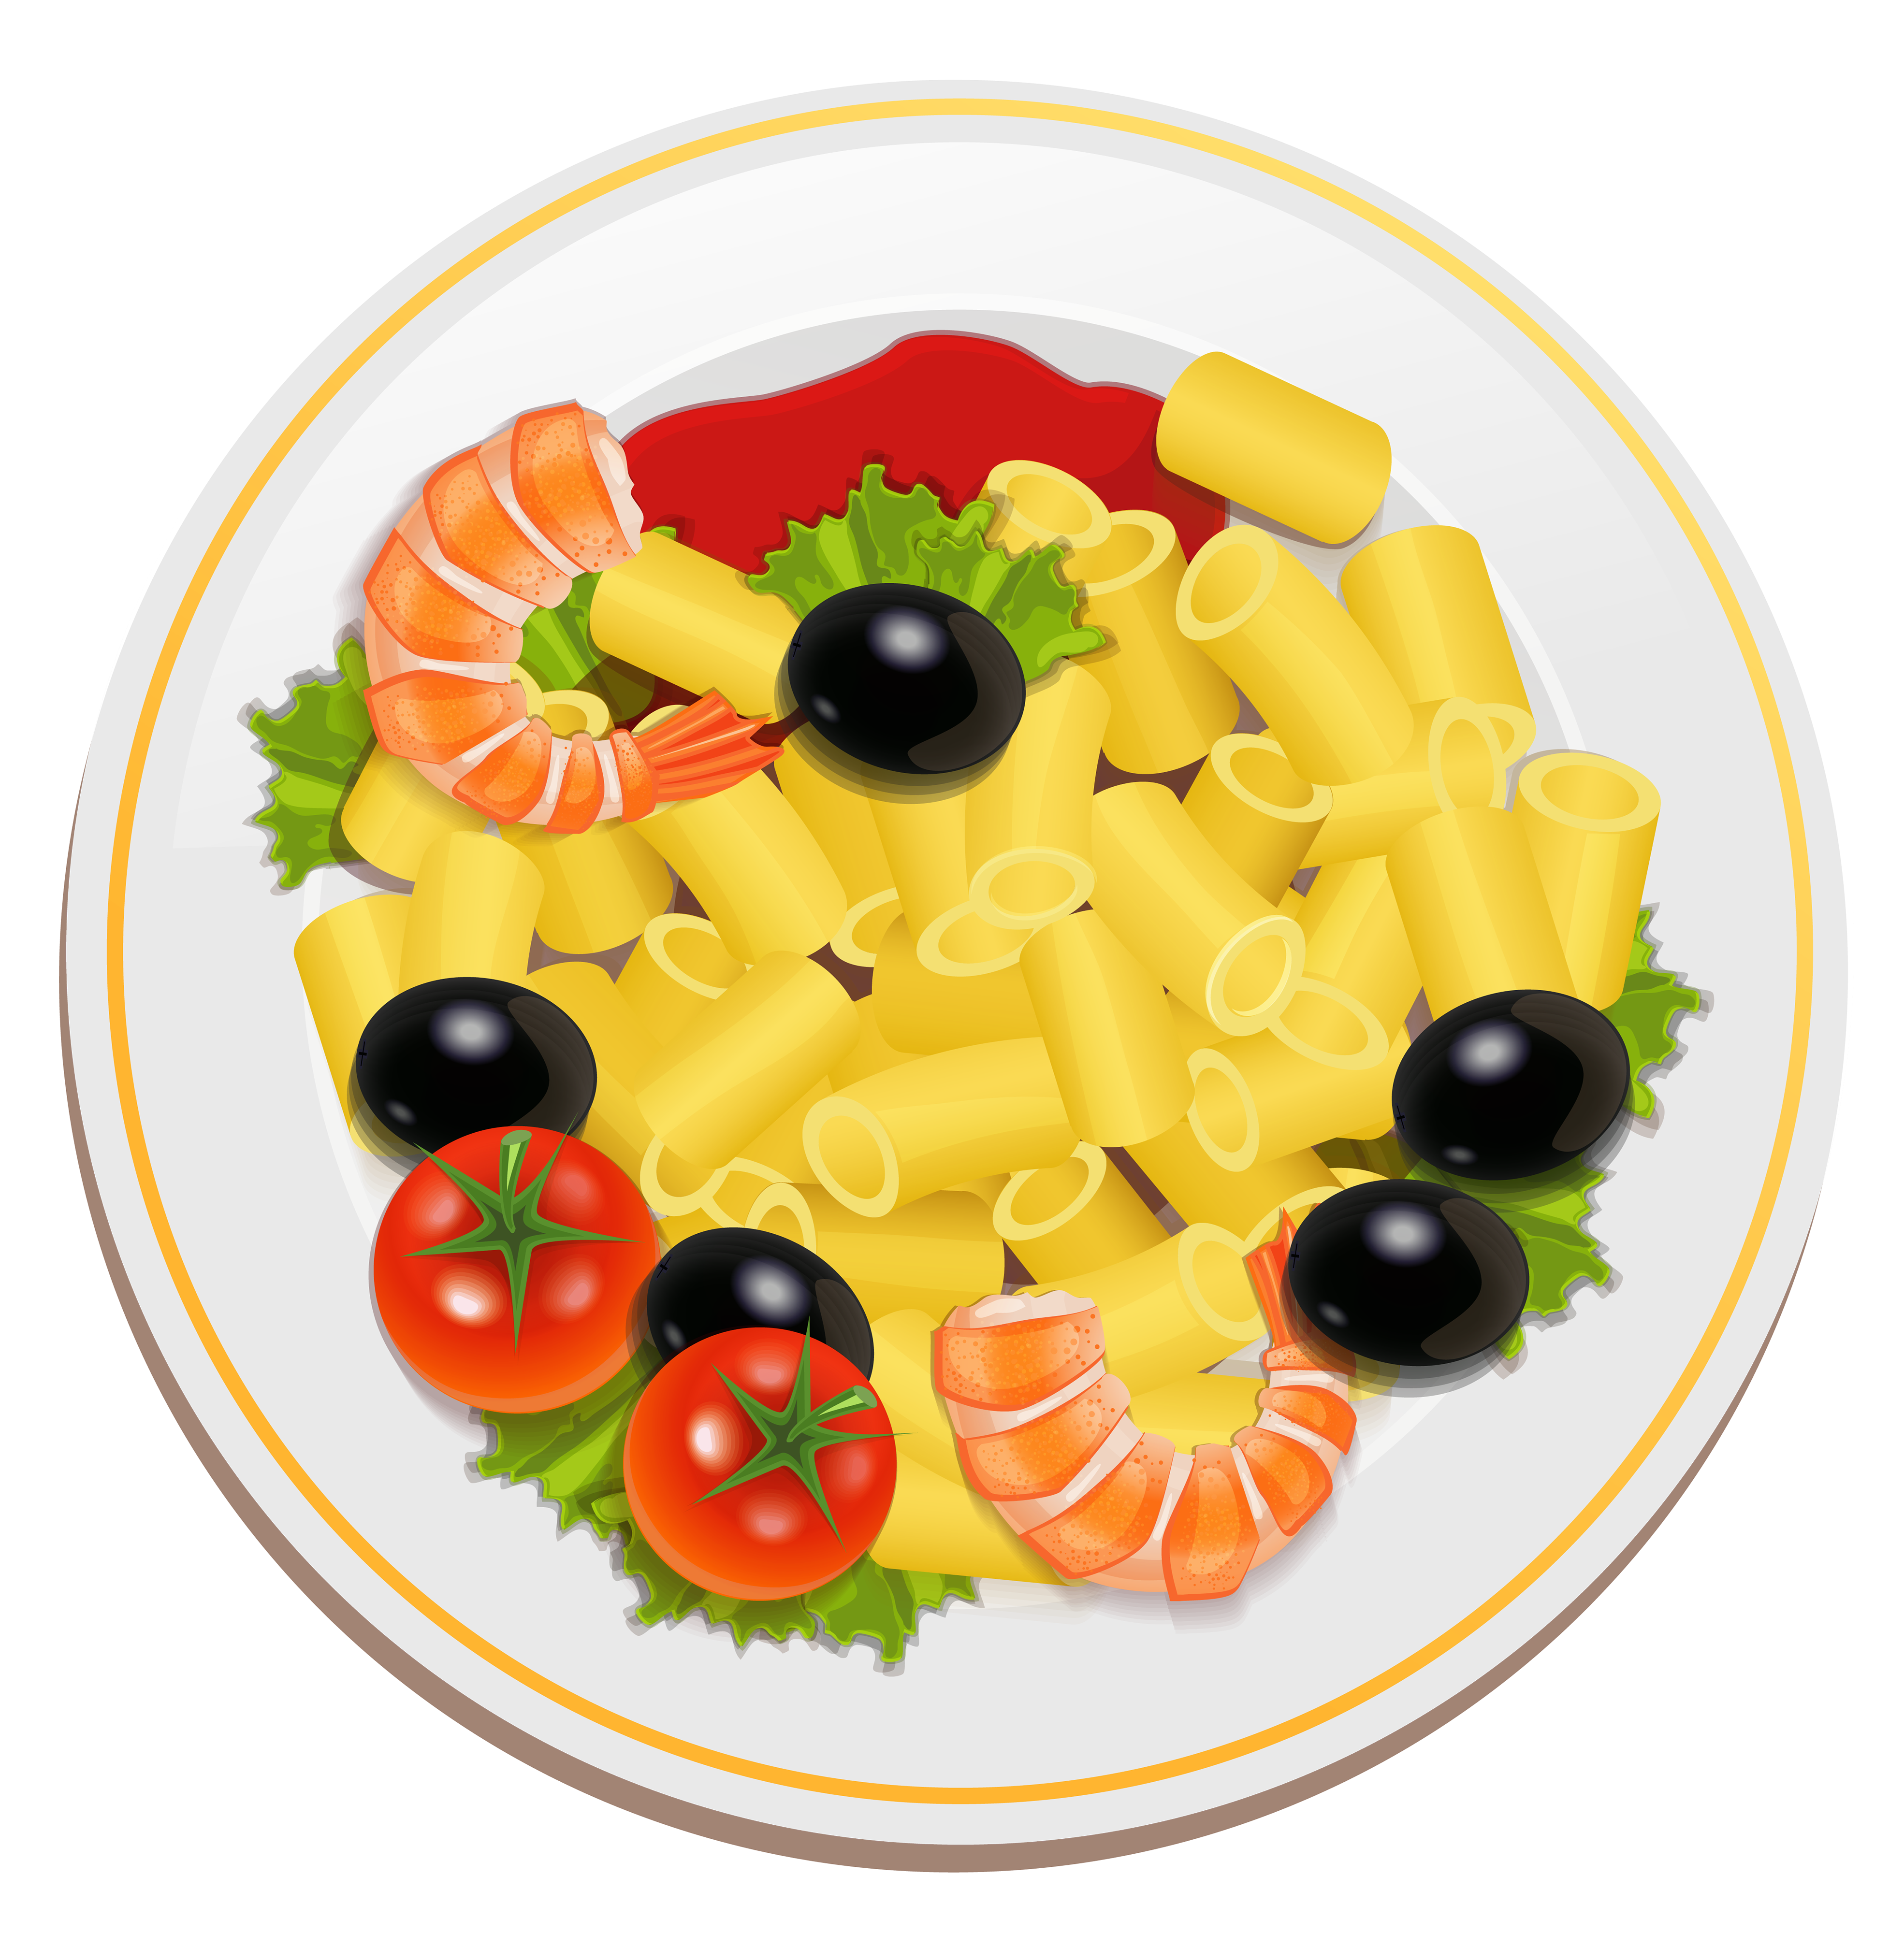 banner royalty free library Pasta clipart. With shrimps png best.